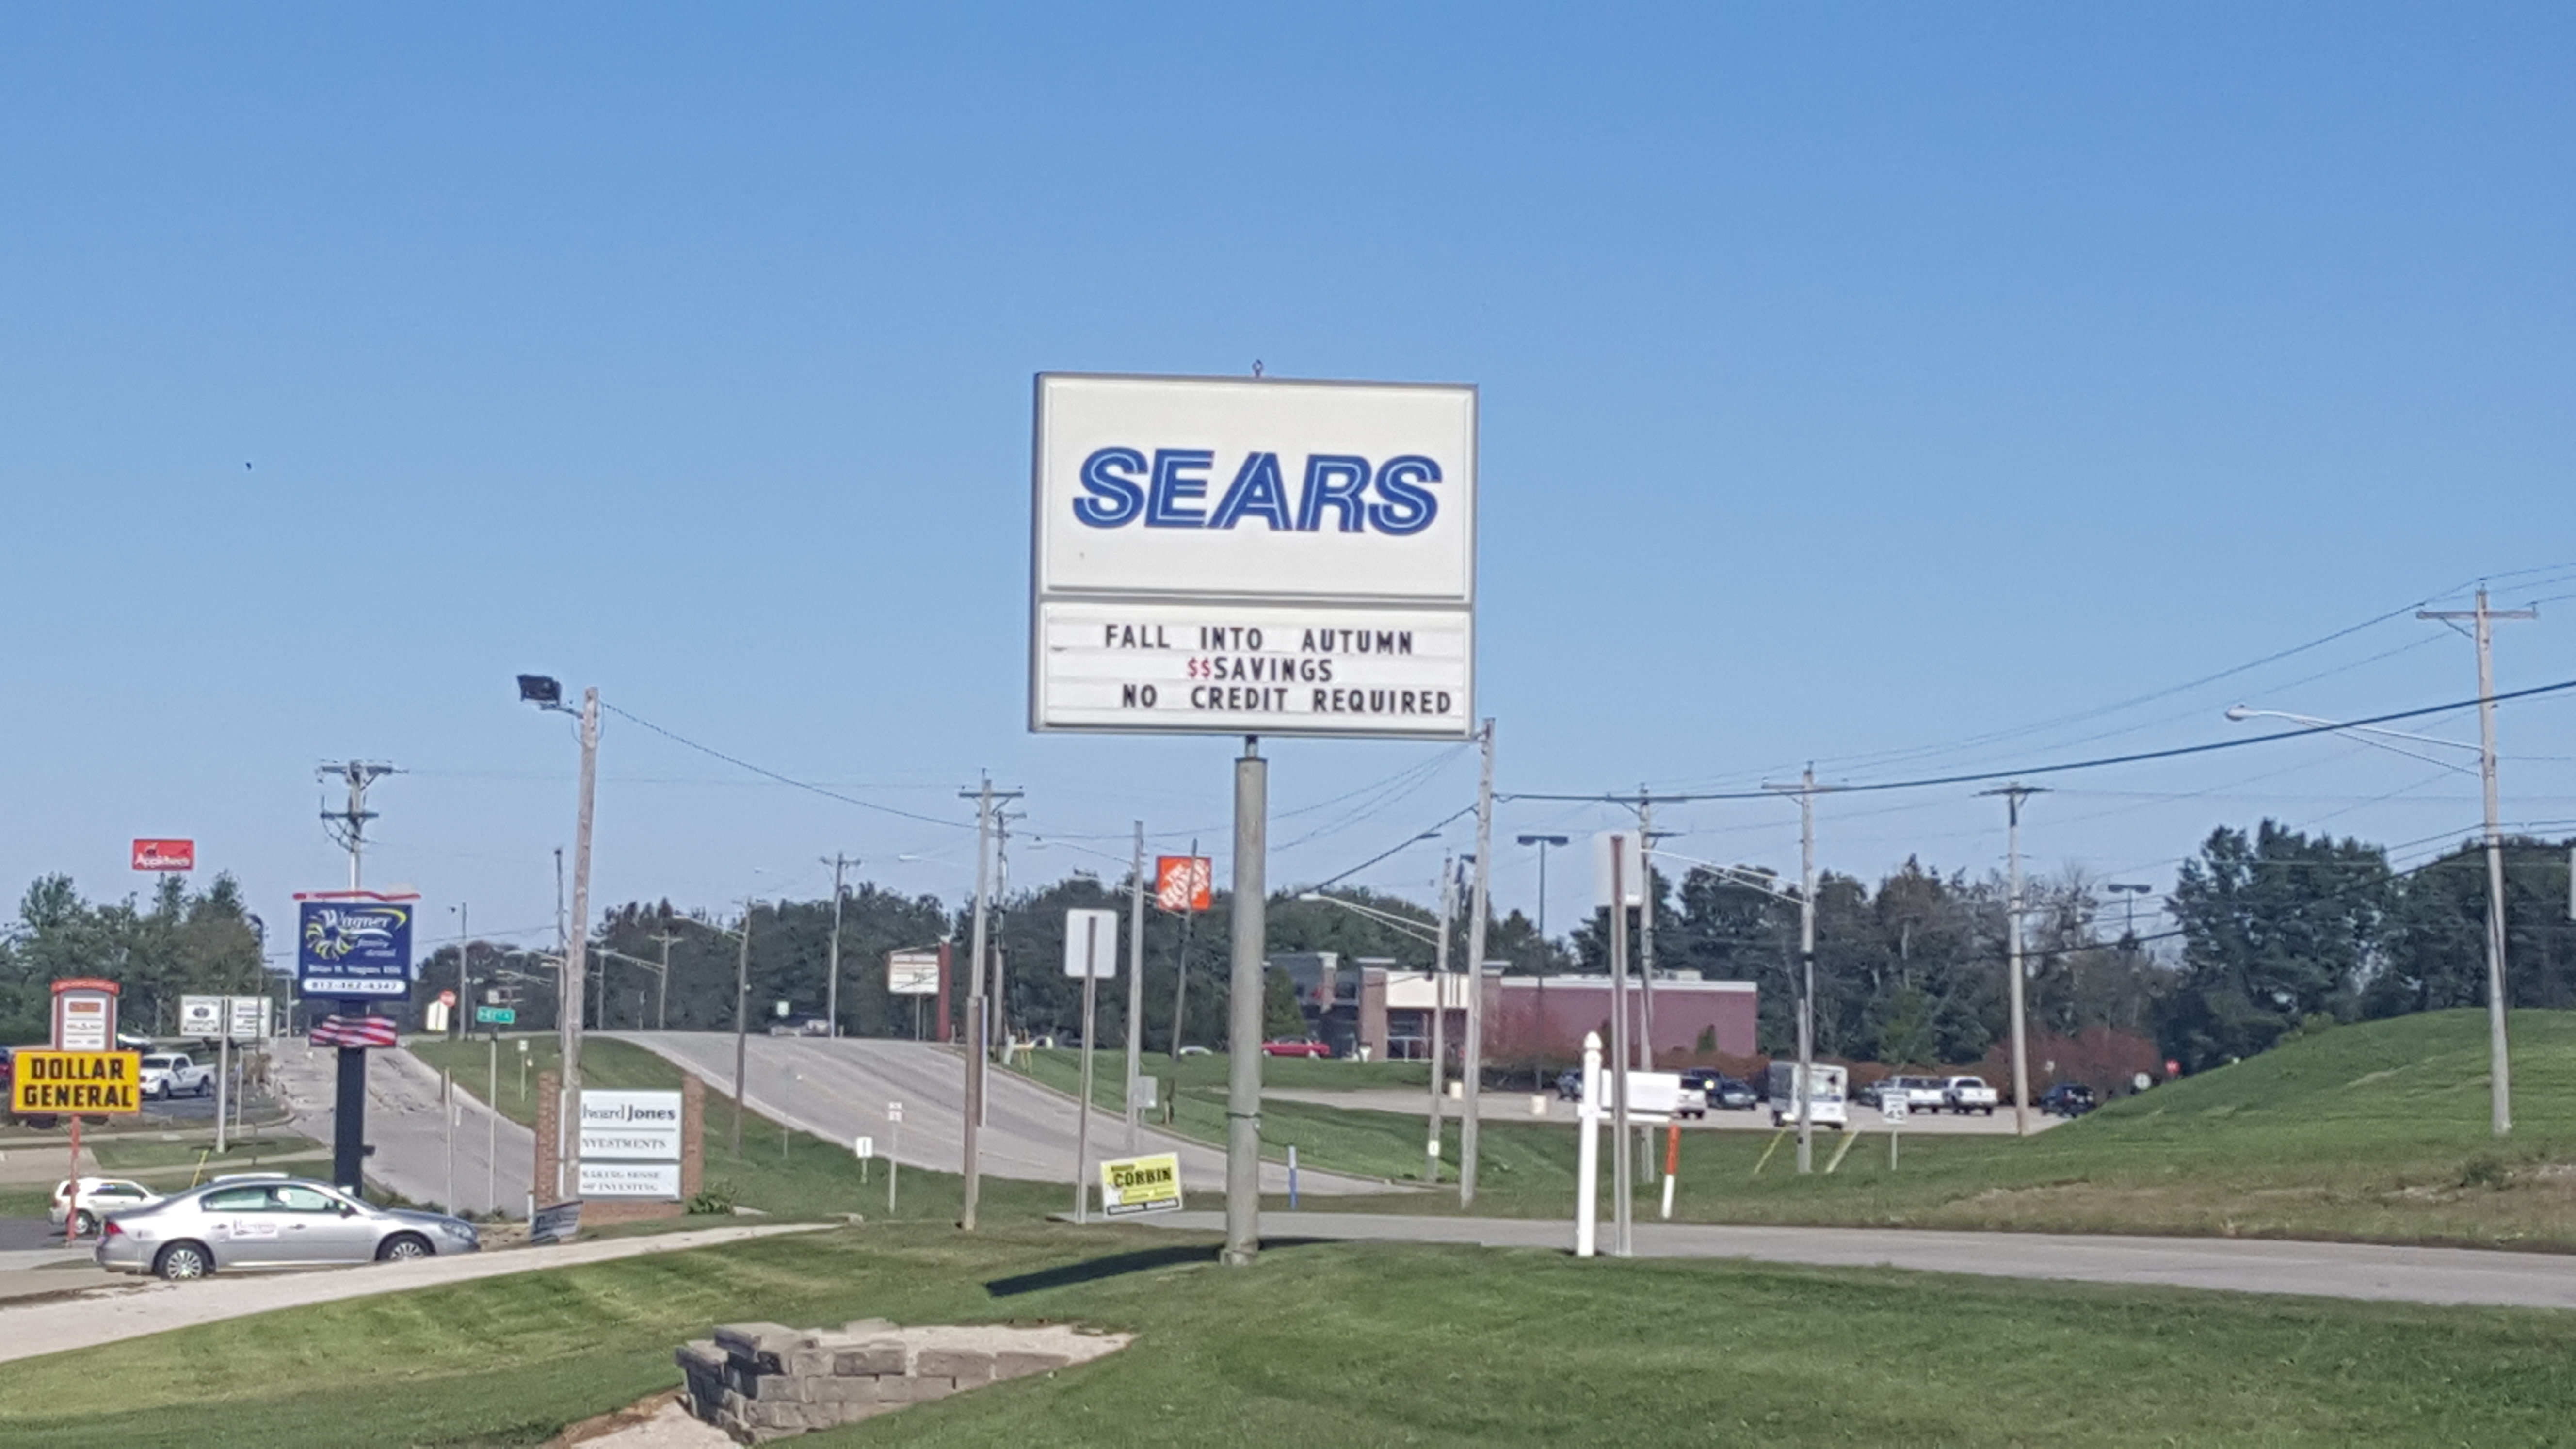 Sears in Jasper Confirms It's Here to Stay Despite